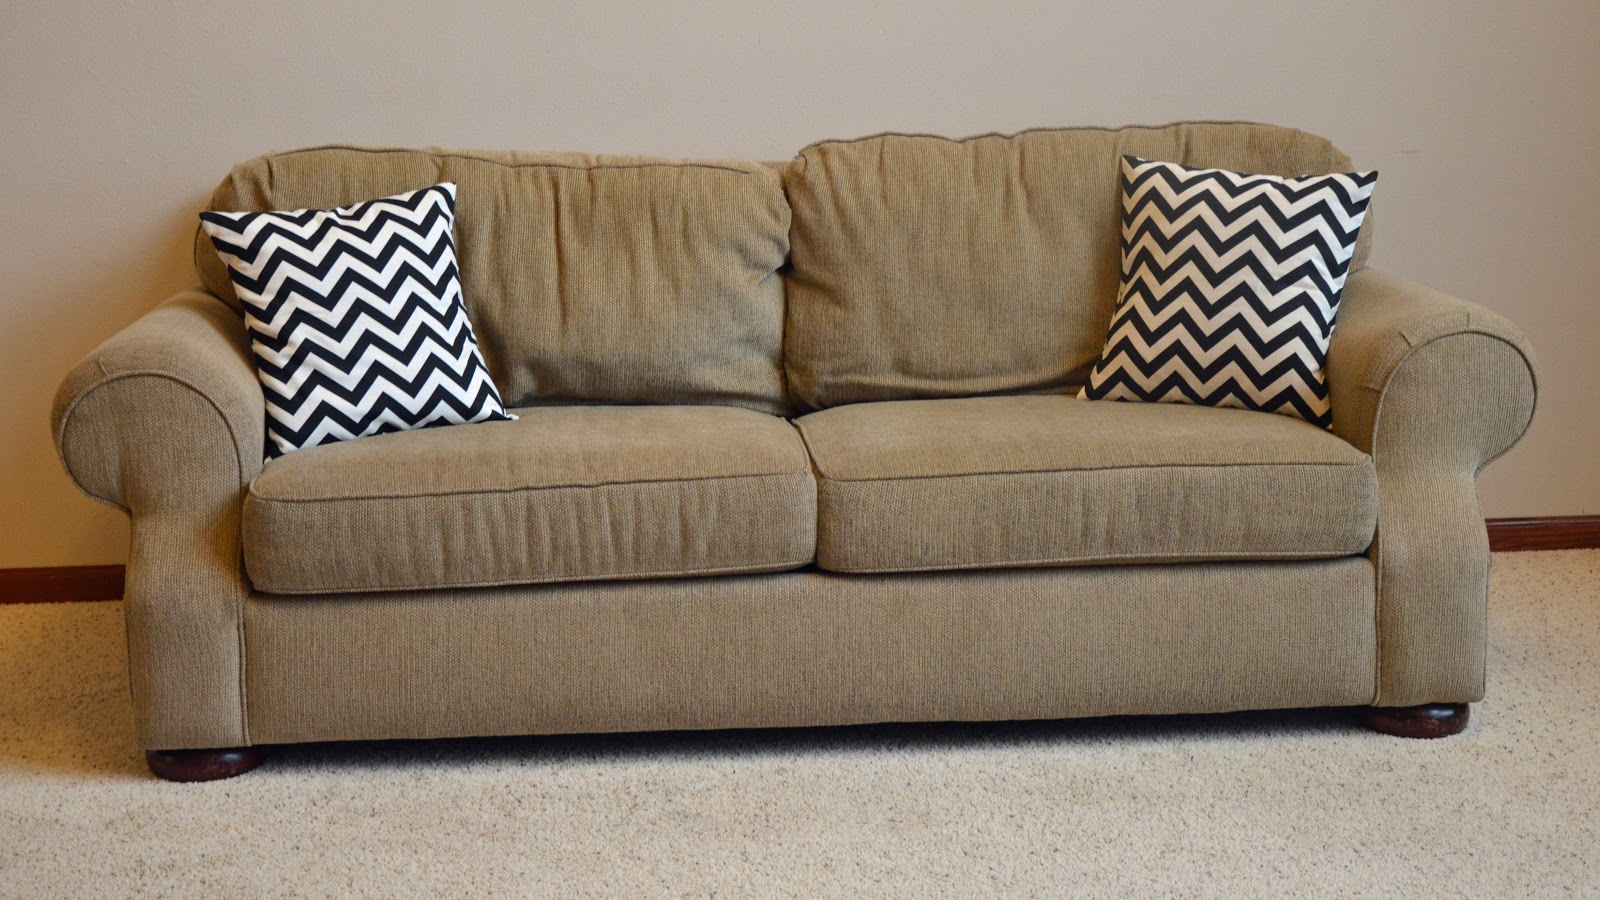 Pillows For Couches On Sale | Home Improvement